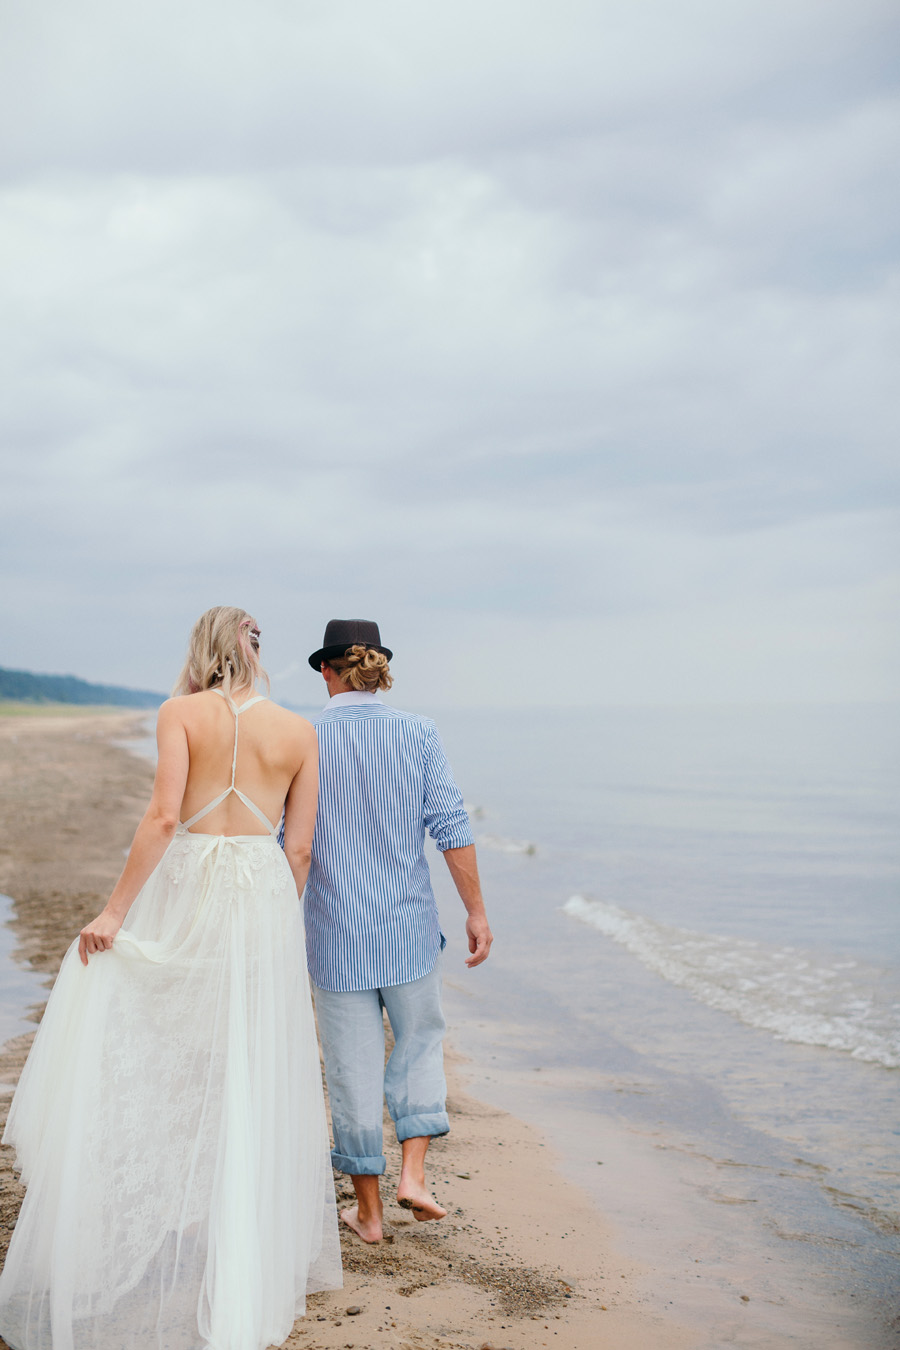 Bohemian-Lake-Michigan-Beach-Wedding056.jpg